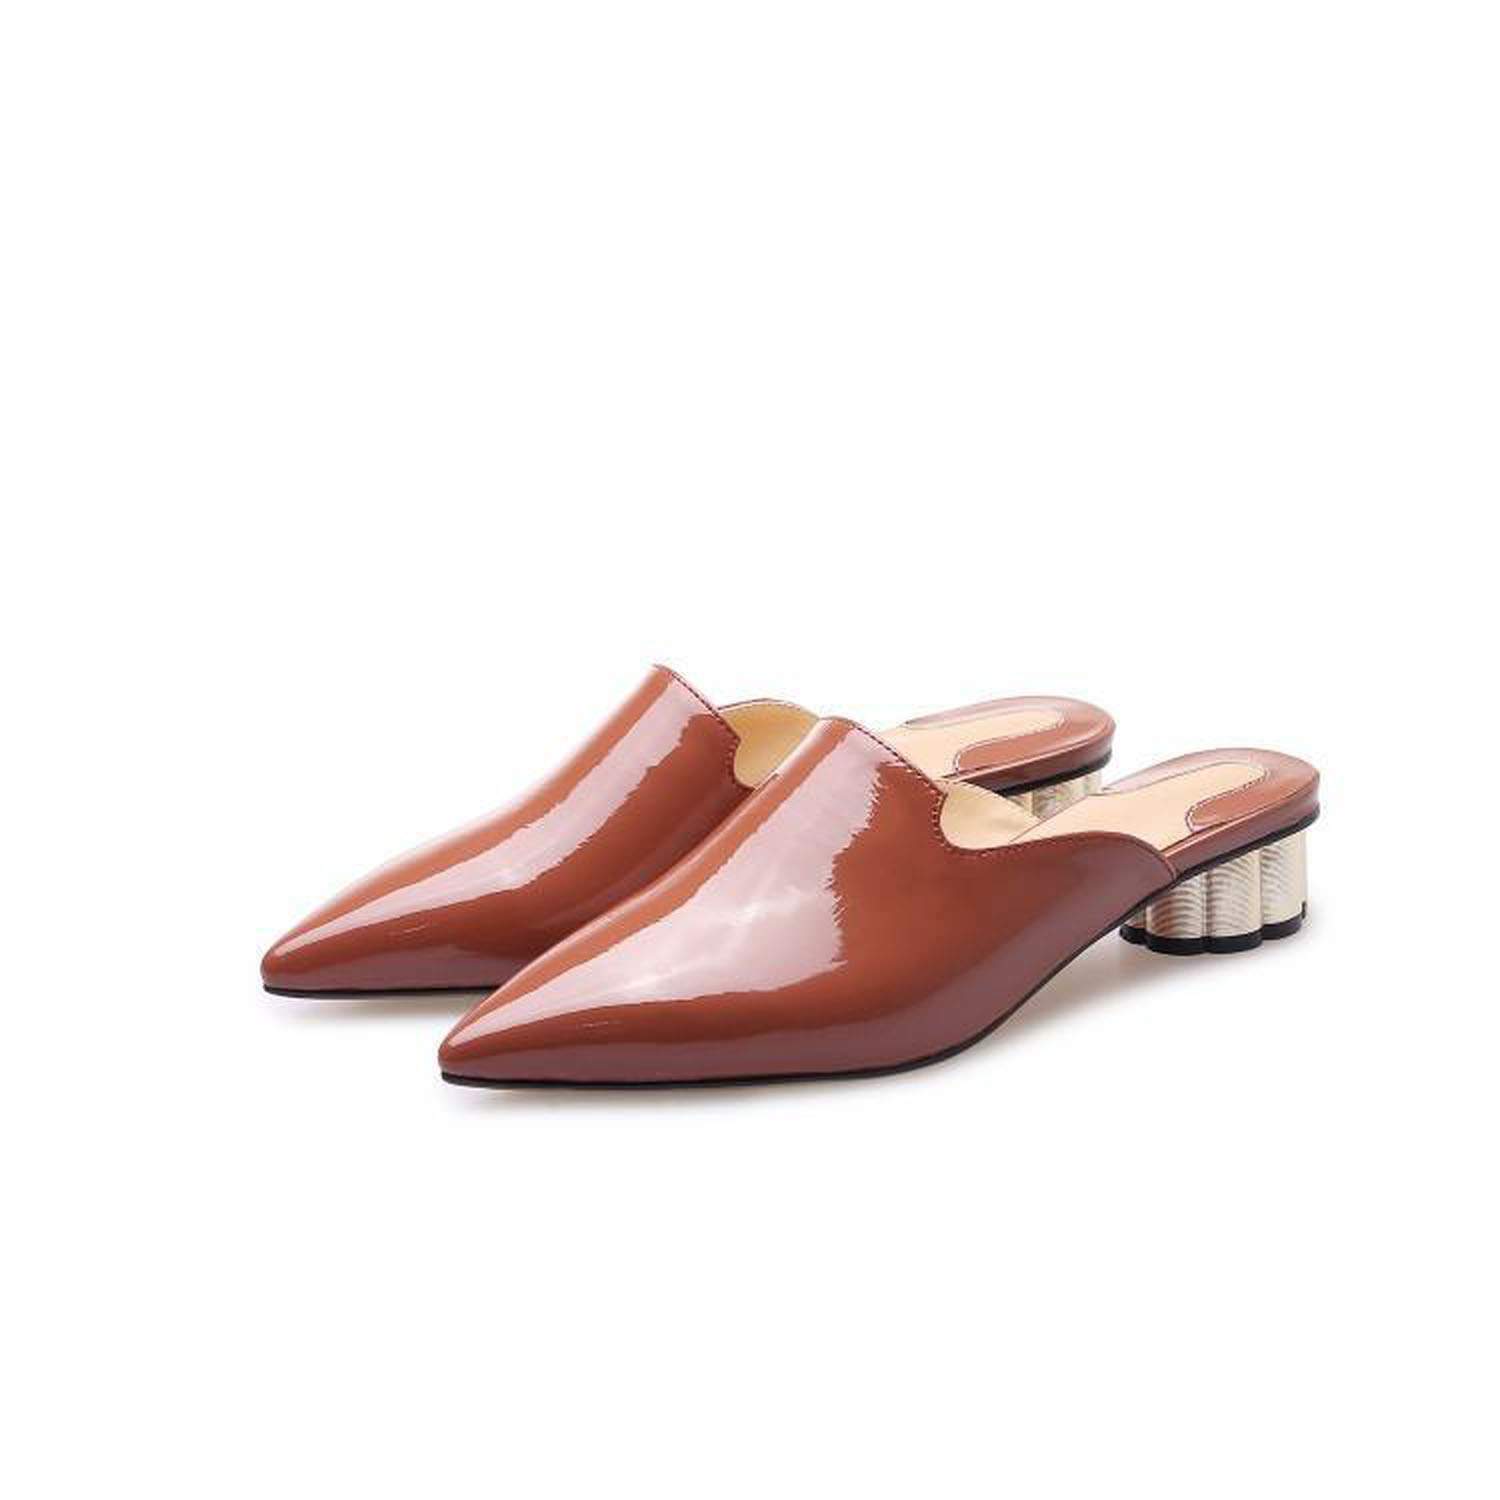 fly-consciousness Summer Slippers Daily Low-Heeled Youth Microfiber Leather Thick Heel